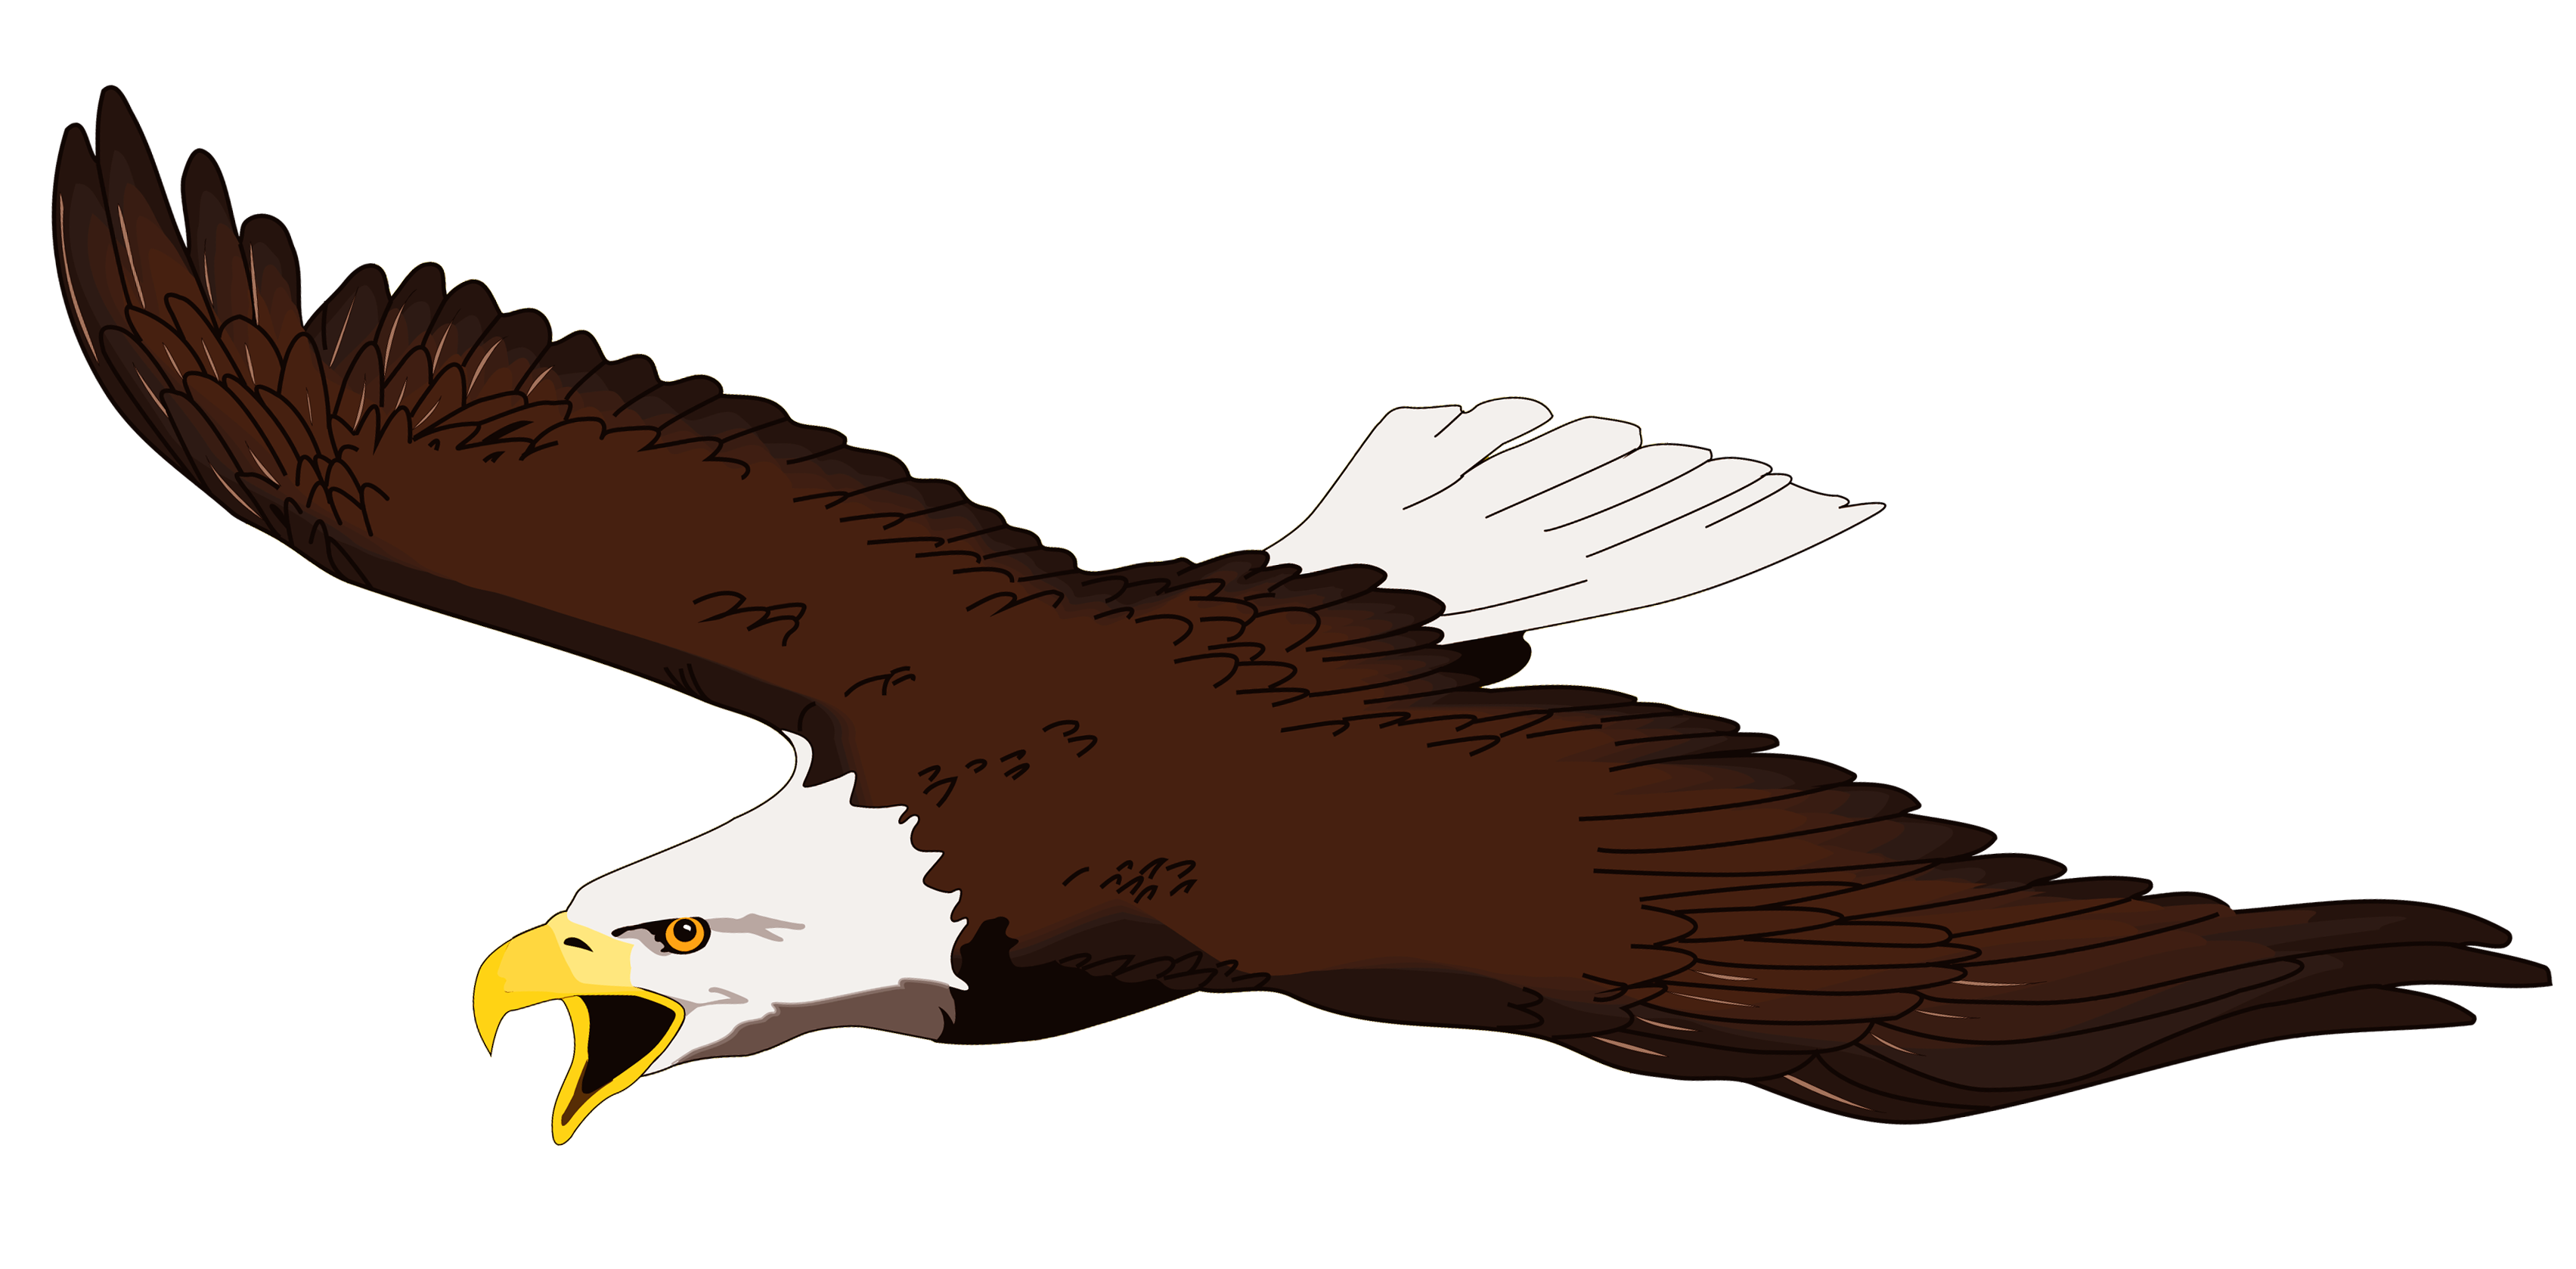 Eagle Clipart | Free Download .-Eagle Clipart | Free Download .-13